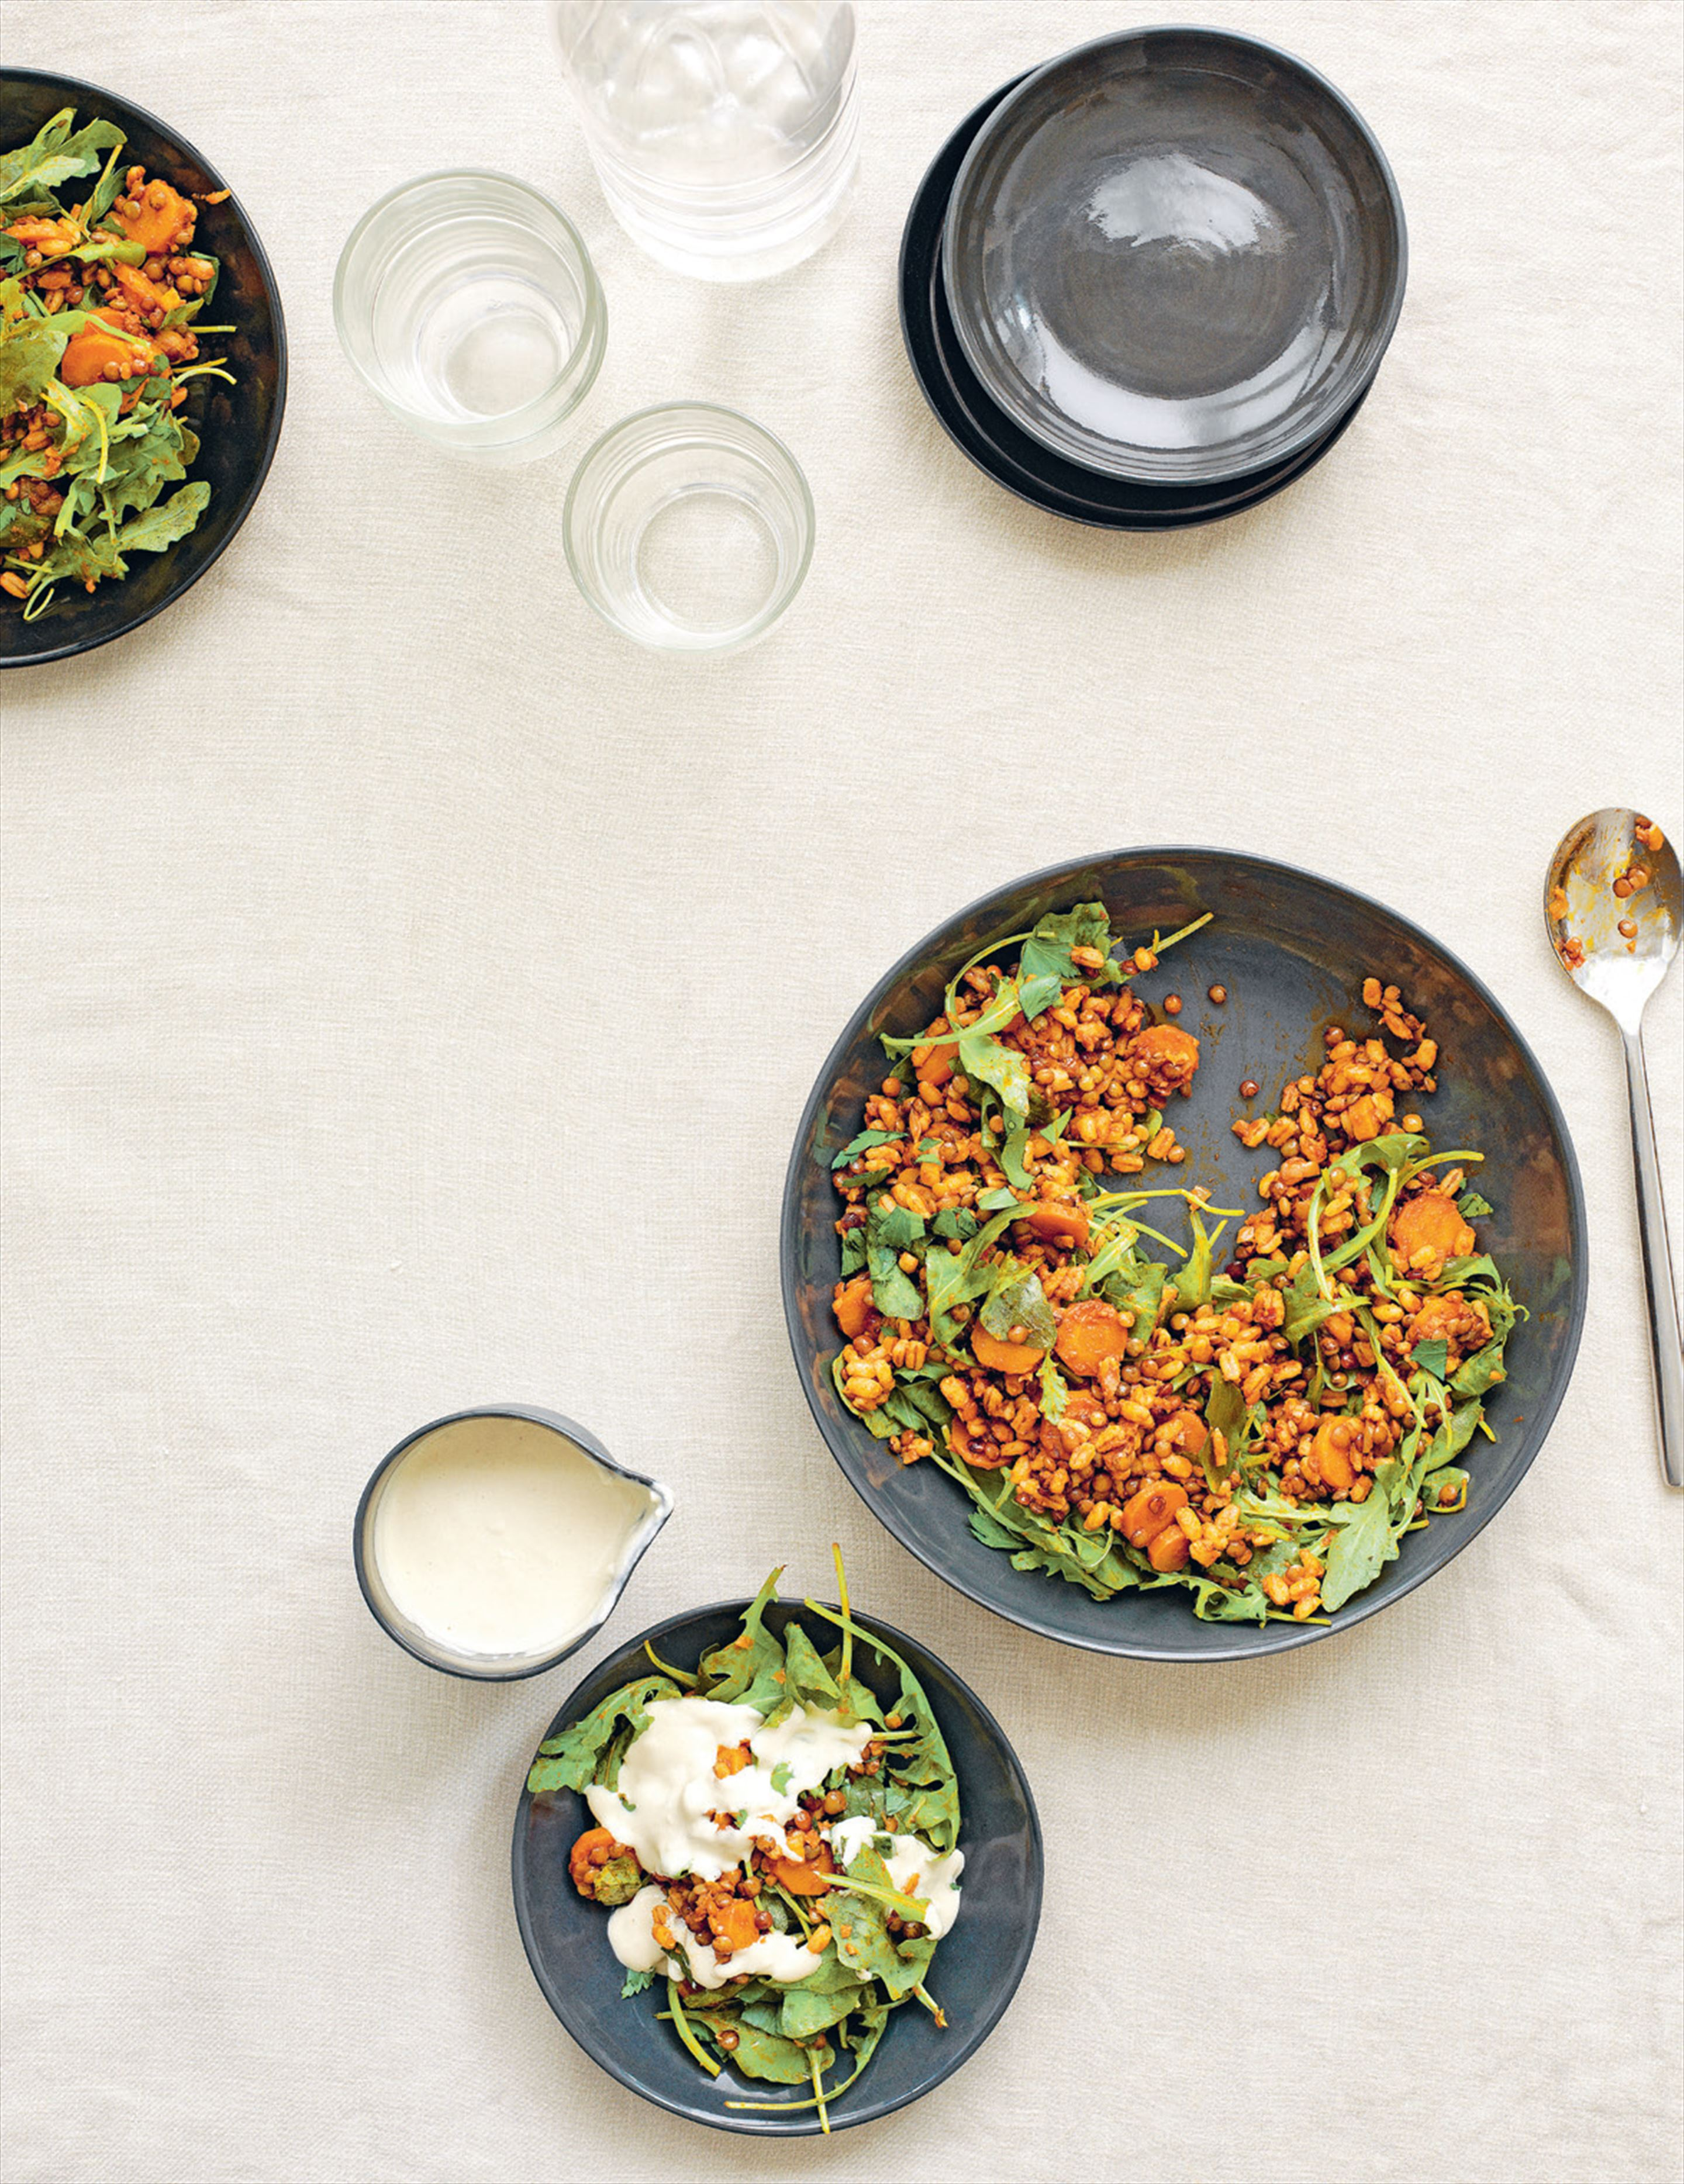 Turkish barley & lentil salad with tahini dressing